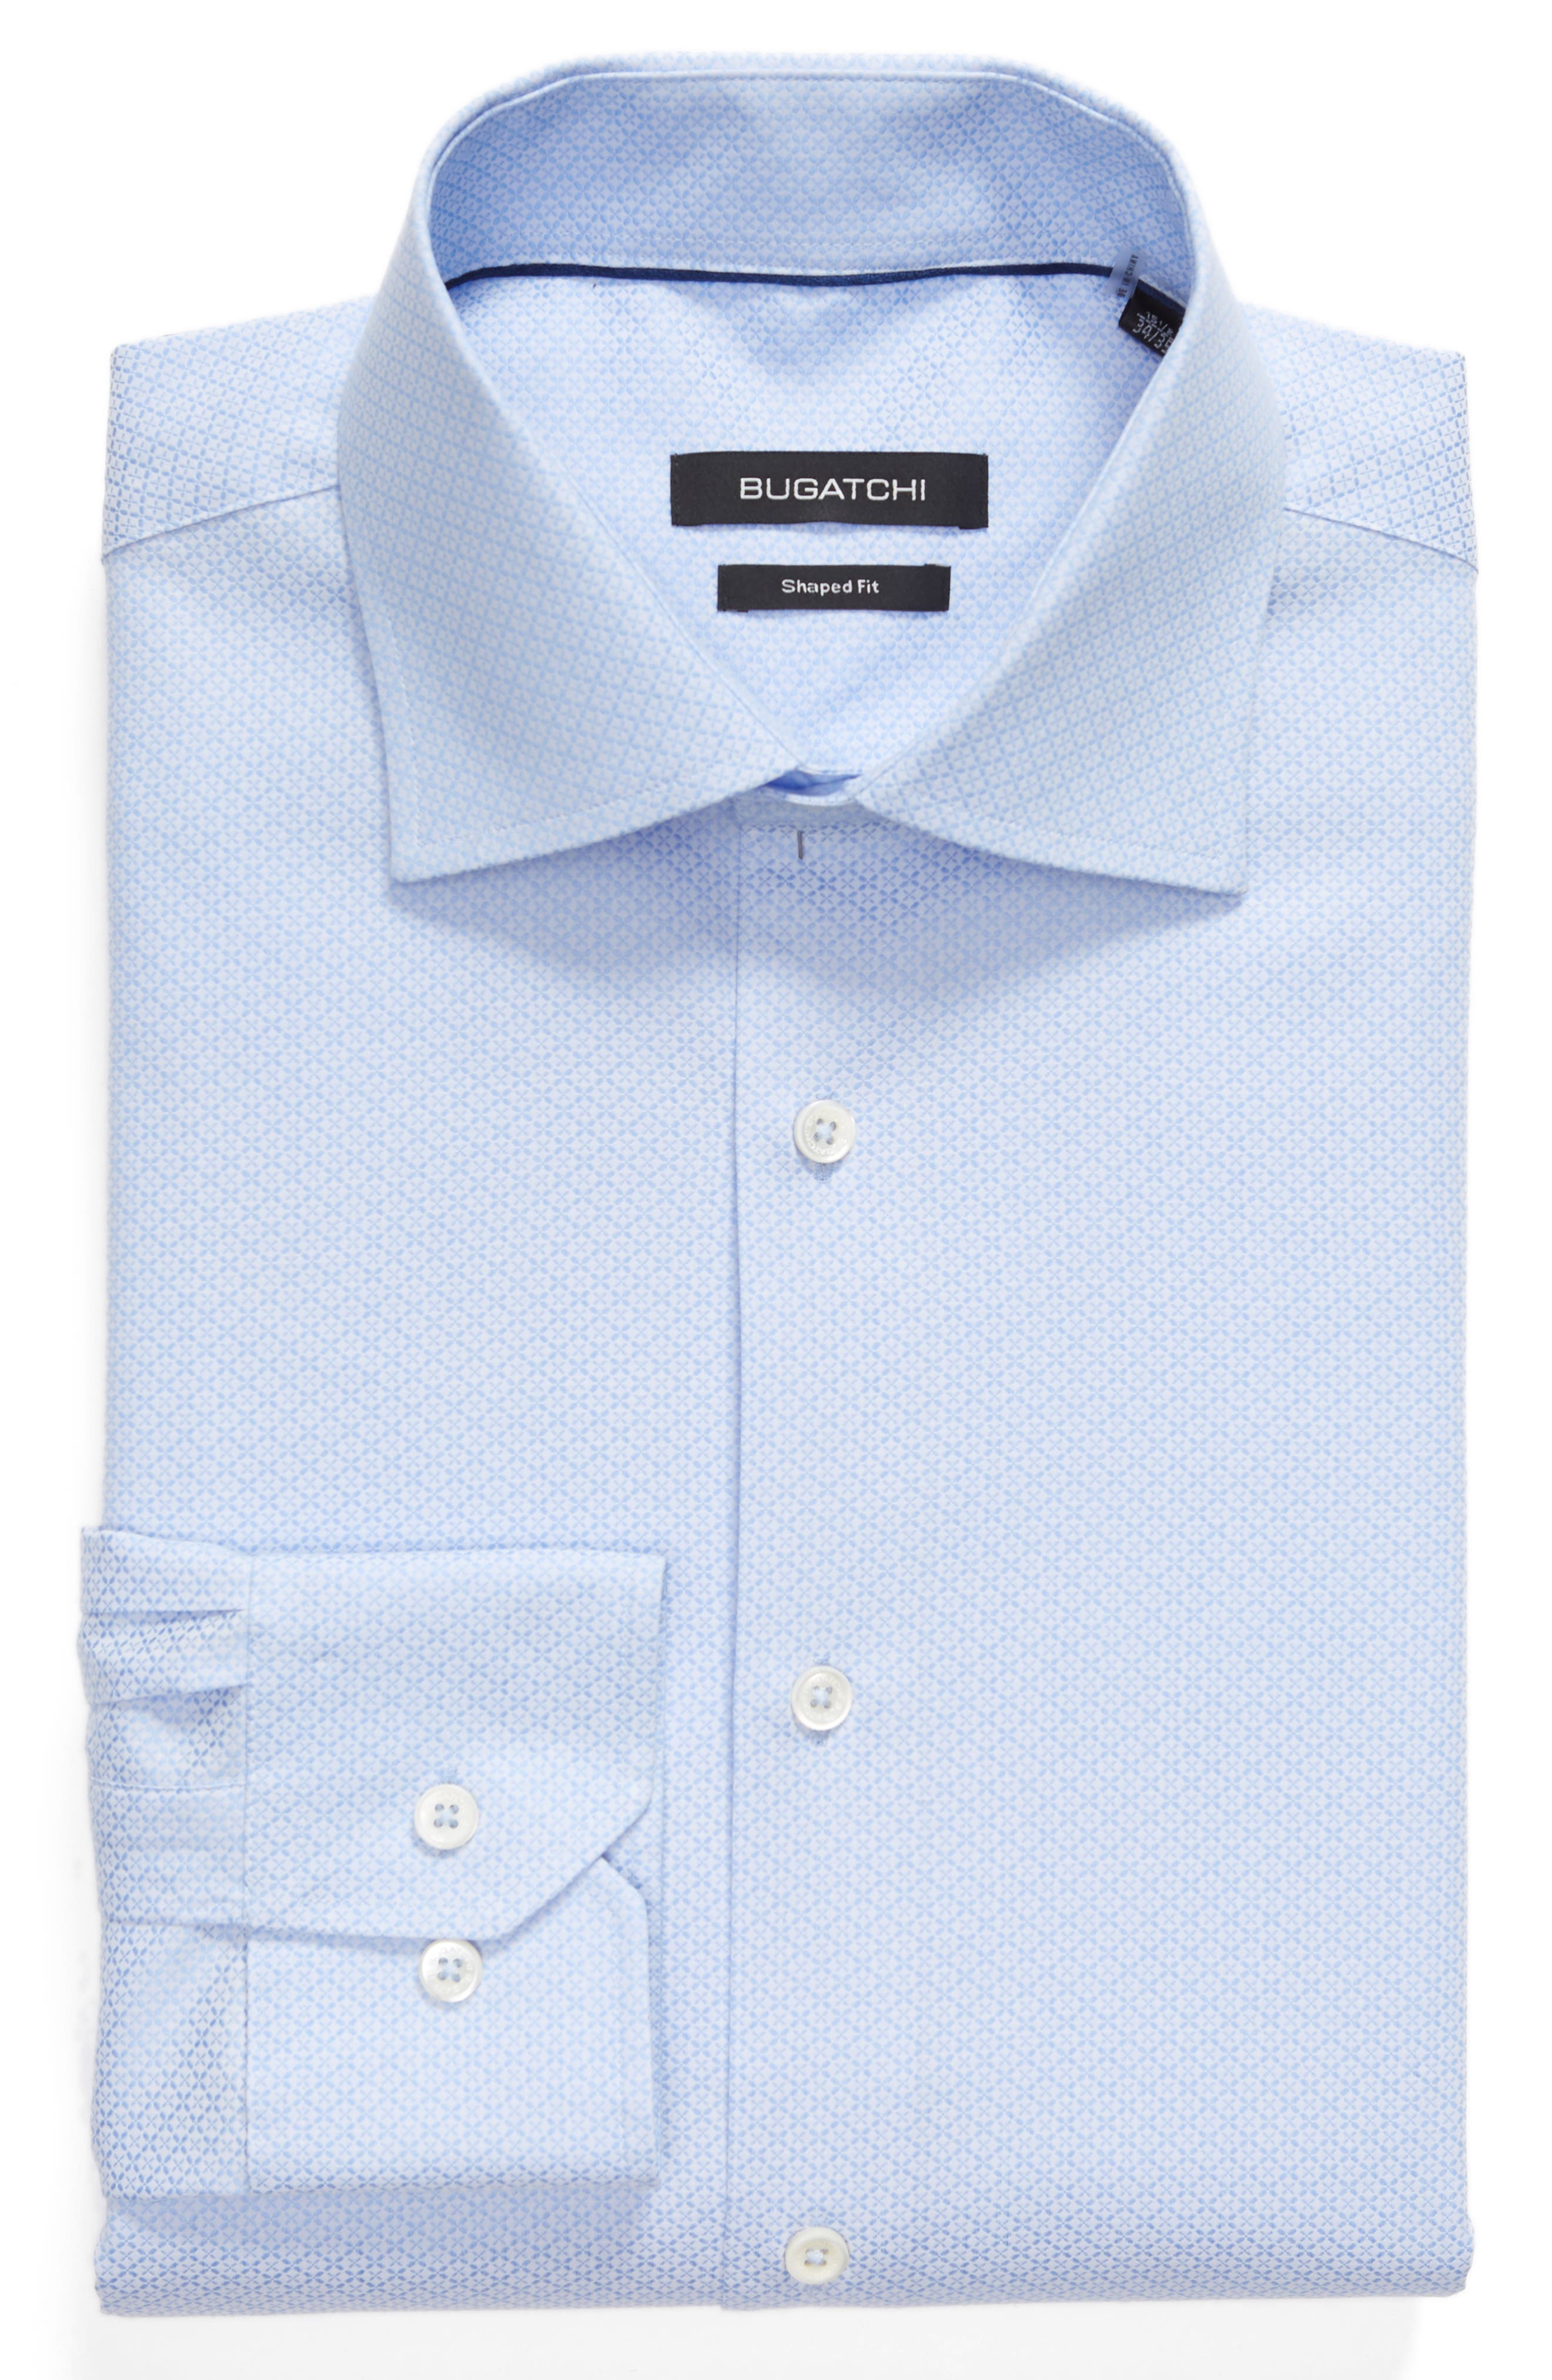 Shaped Fit Textured Dress Shirt,                             Alternate thumbnail 6, color,                             SKY